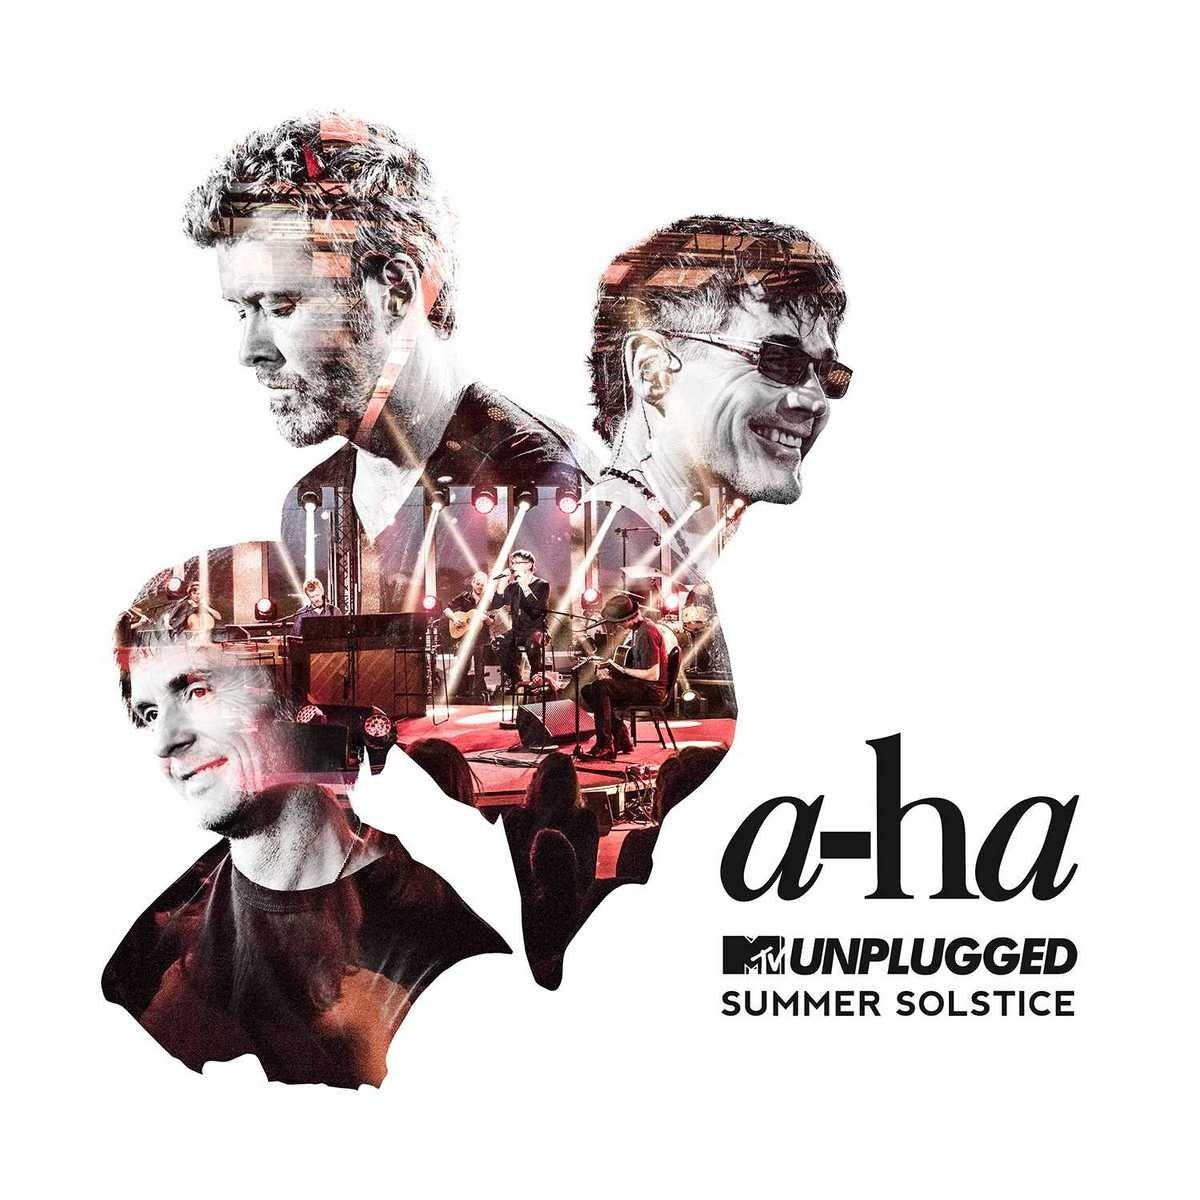 MTV Unplugged - Summer Solstice (2CD) by A-ha: Amazon.co.uk: Music